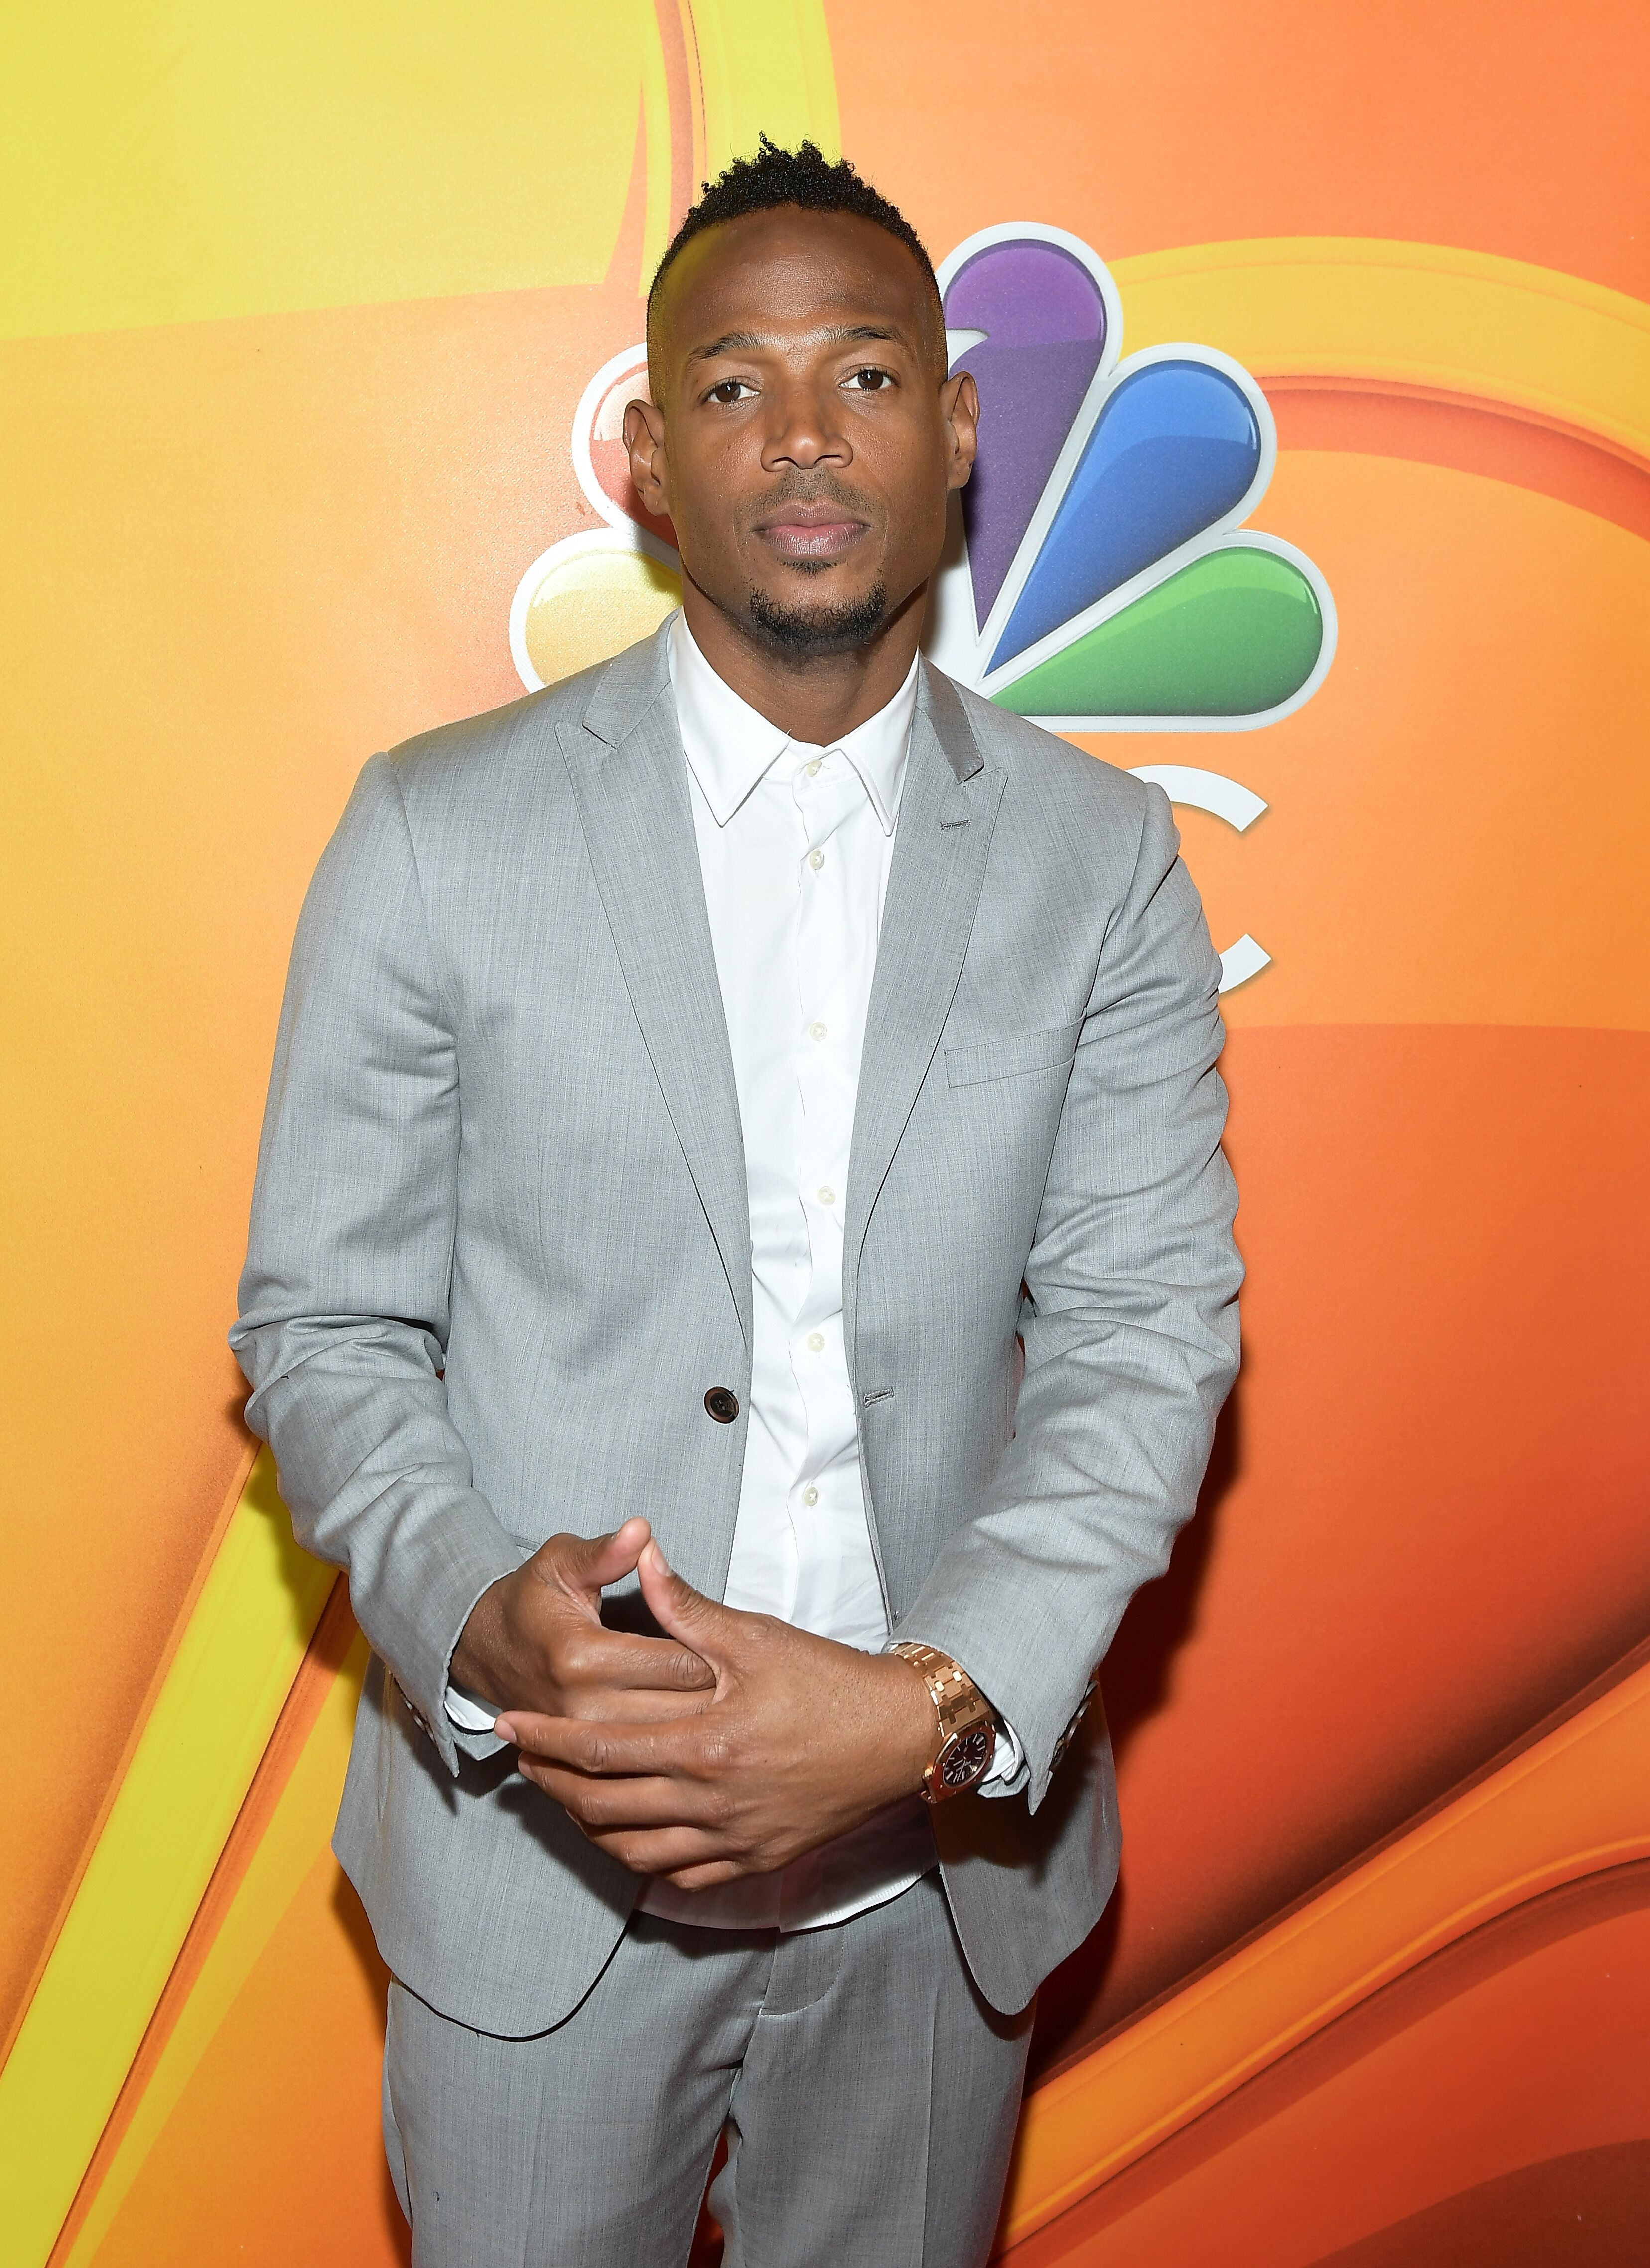 Marlon Wayans at the NBCUniversal Summer TCA Press Tour at The Beverly Hilton Hotel on August 3, 2017 in Beverly Hills, California | Photo: Getty Images